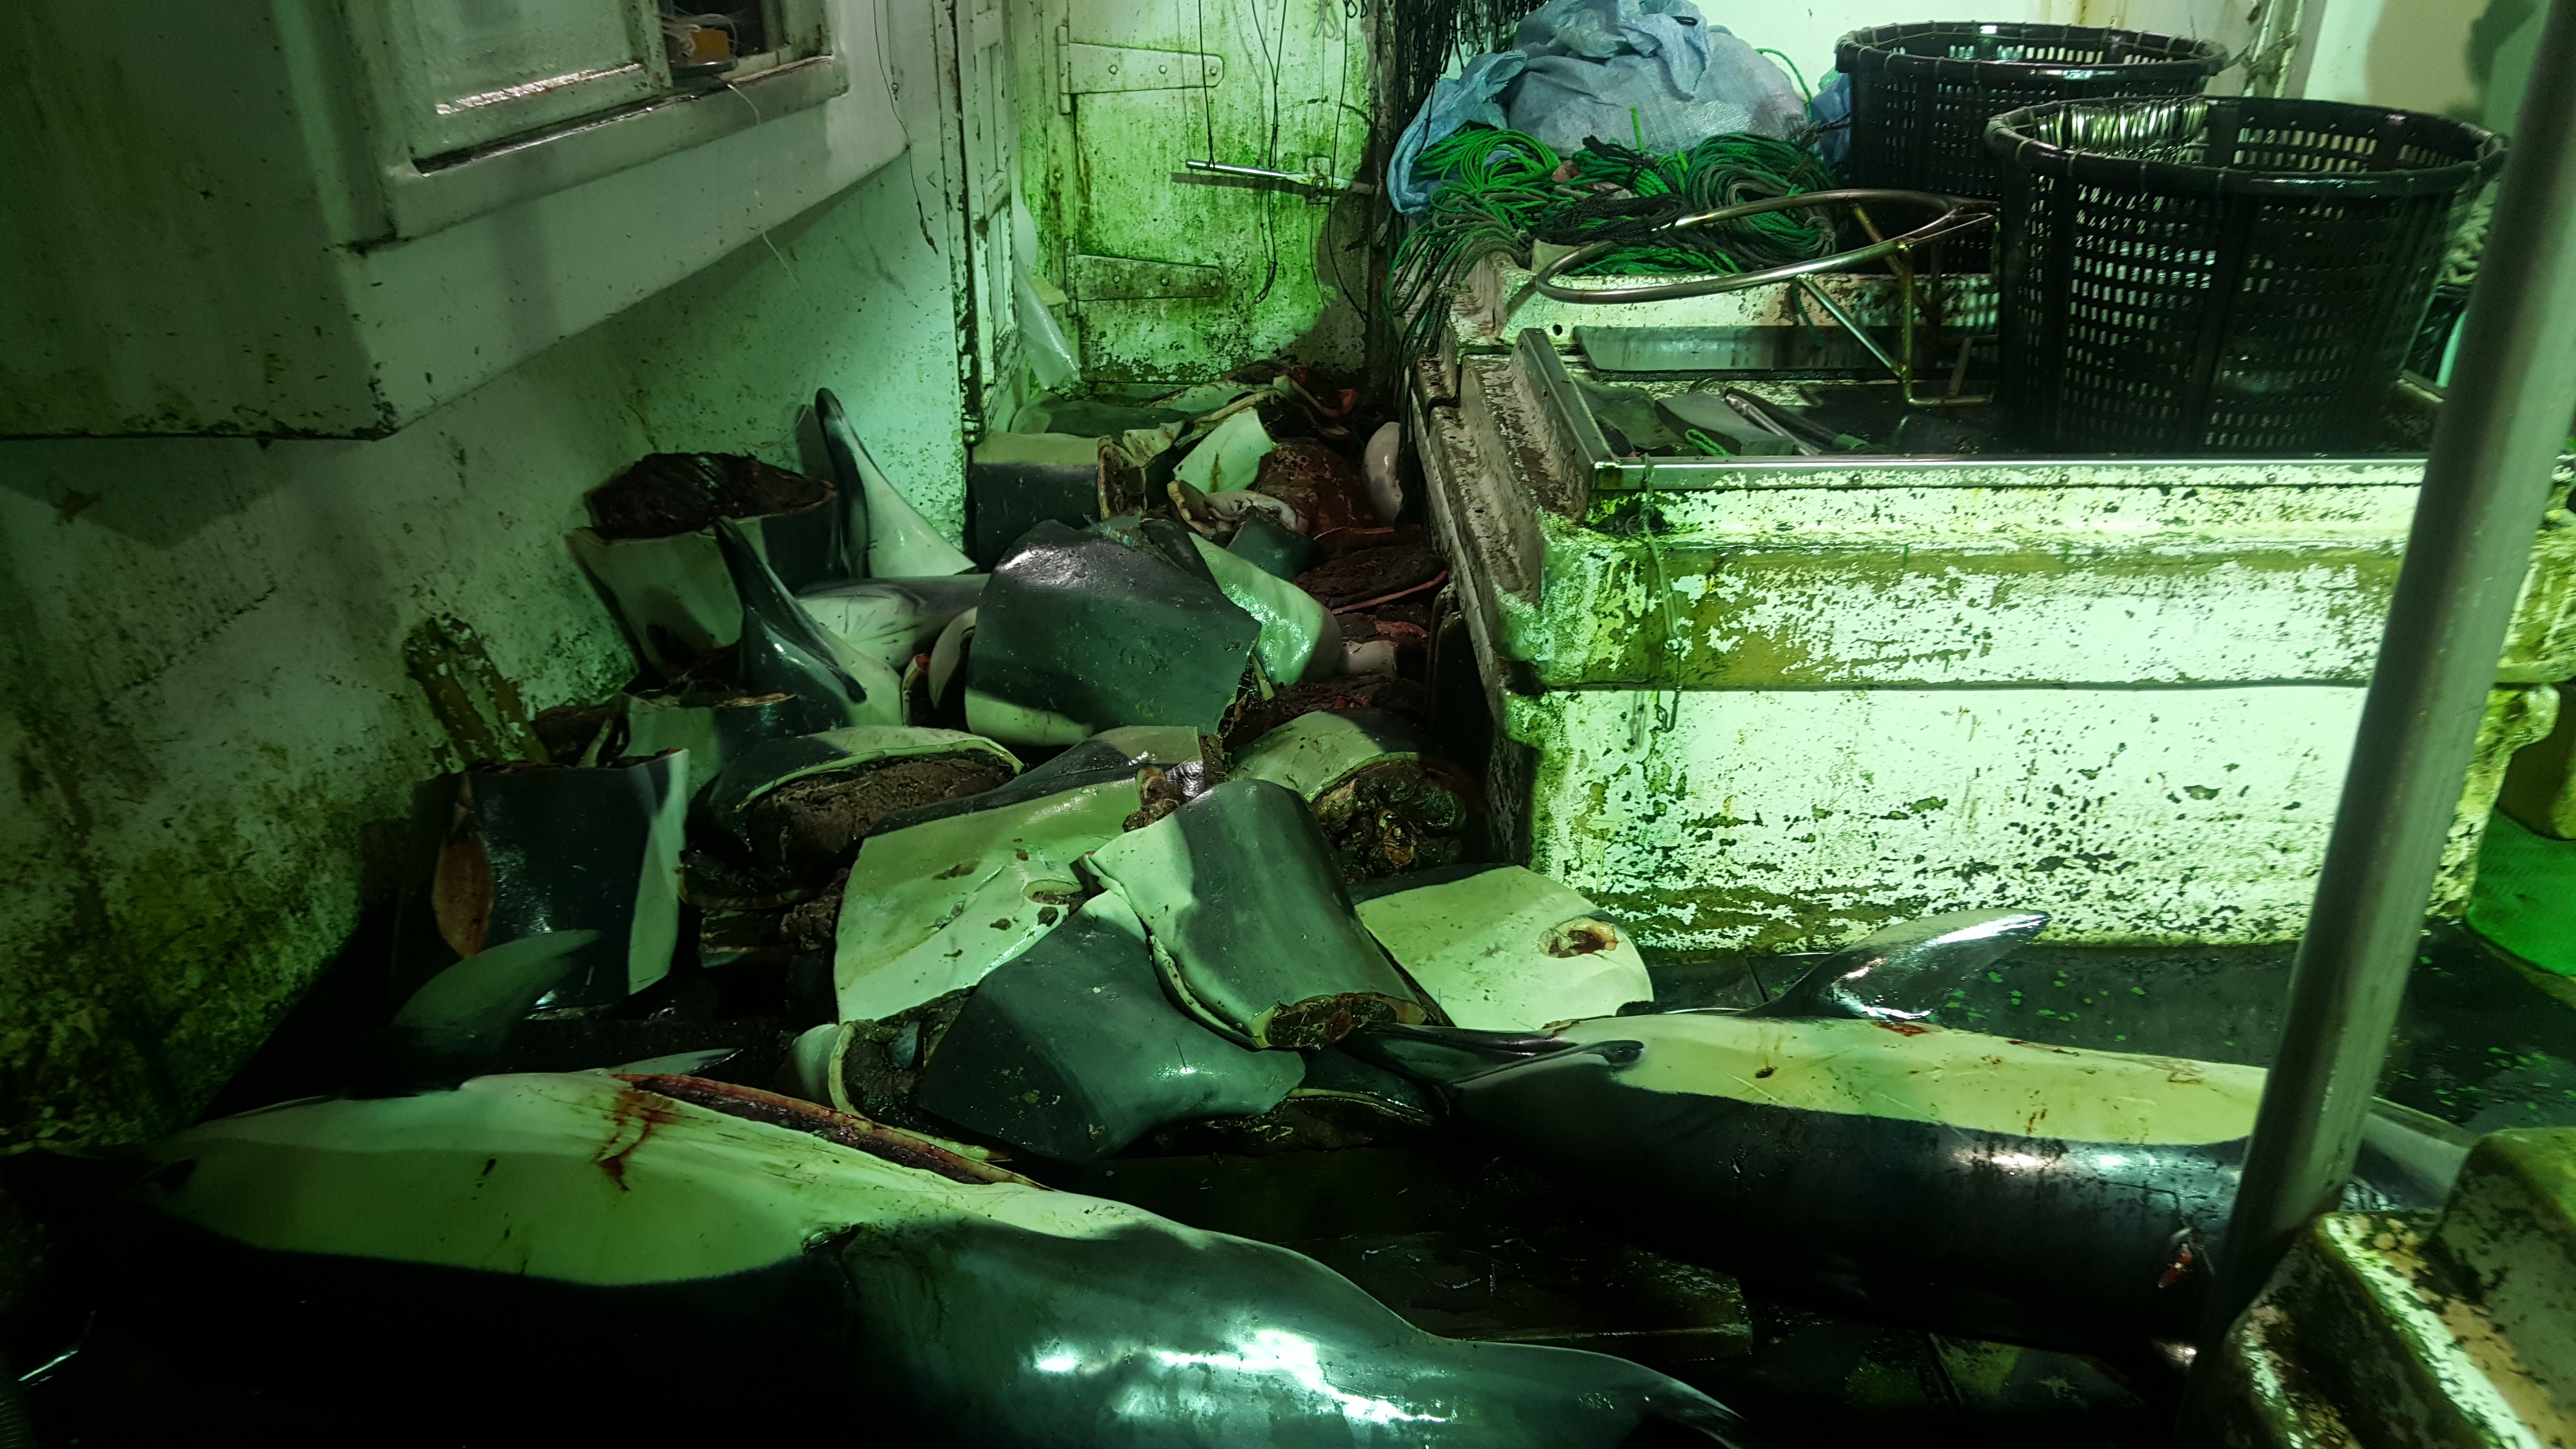 Taiwan fishing vessels target dolphins as bait for sharks